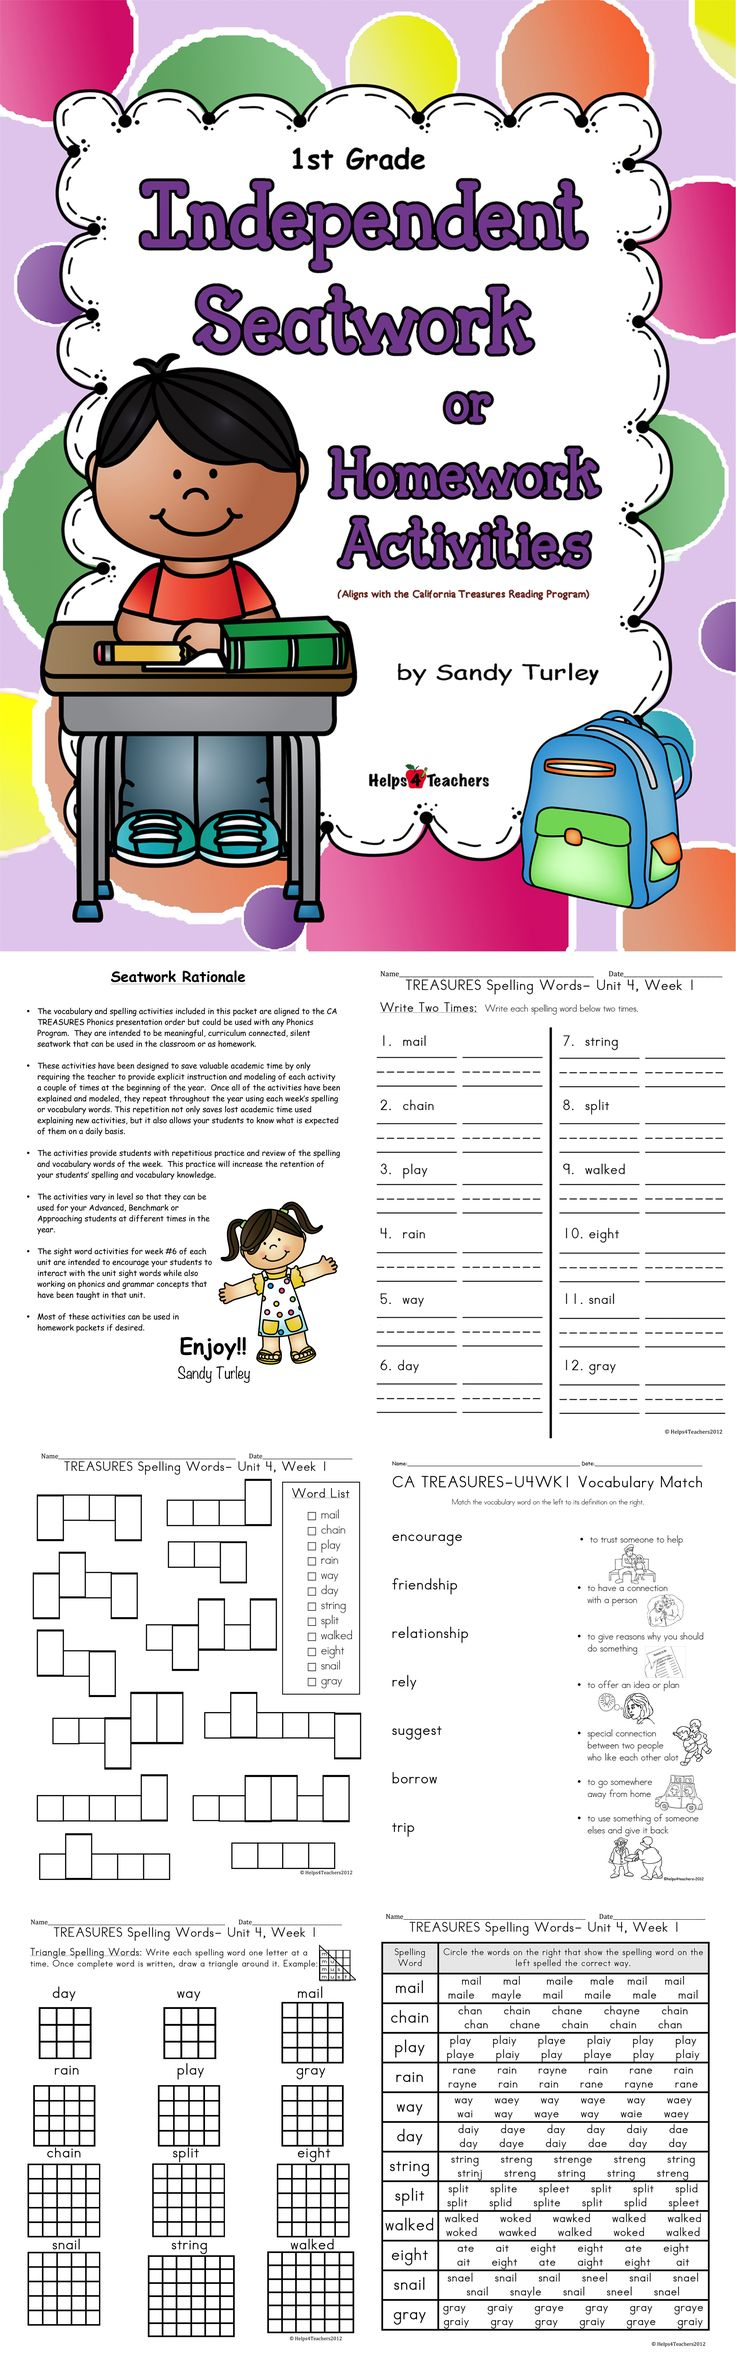 $FANTASTIC!  This E-Book contains printable independent seatwork activities for Spelling, Vocabulary and Sight Words. (It is aligned with the California Treasures Reading Program.) It includes everything you need for the WHOLE YEAR!!!  Found at: http://www.teacherspayteachers.com/Store/Helps4teachers